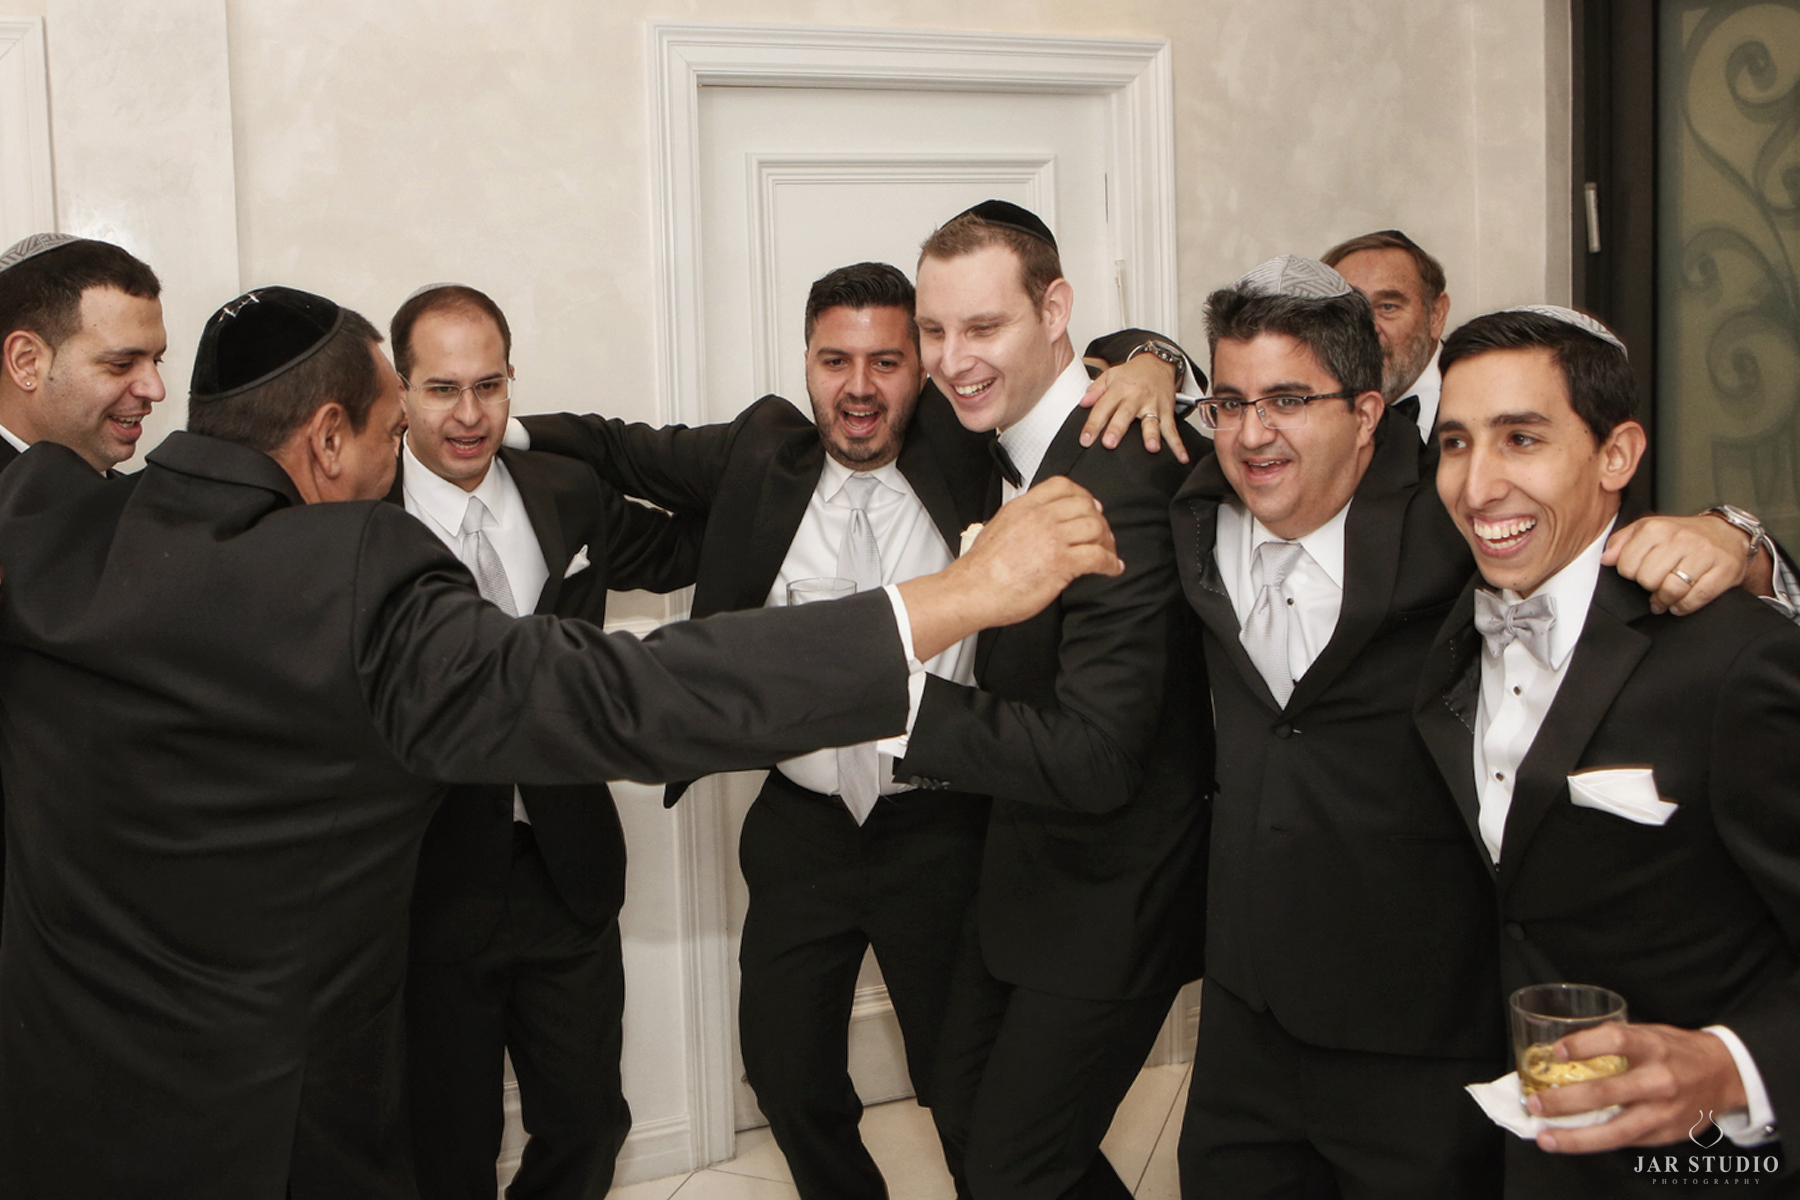 22-chabad-orlando-events-wedding-photographer-jarstudio.JPG